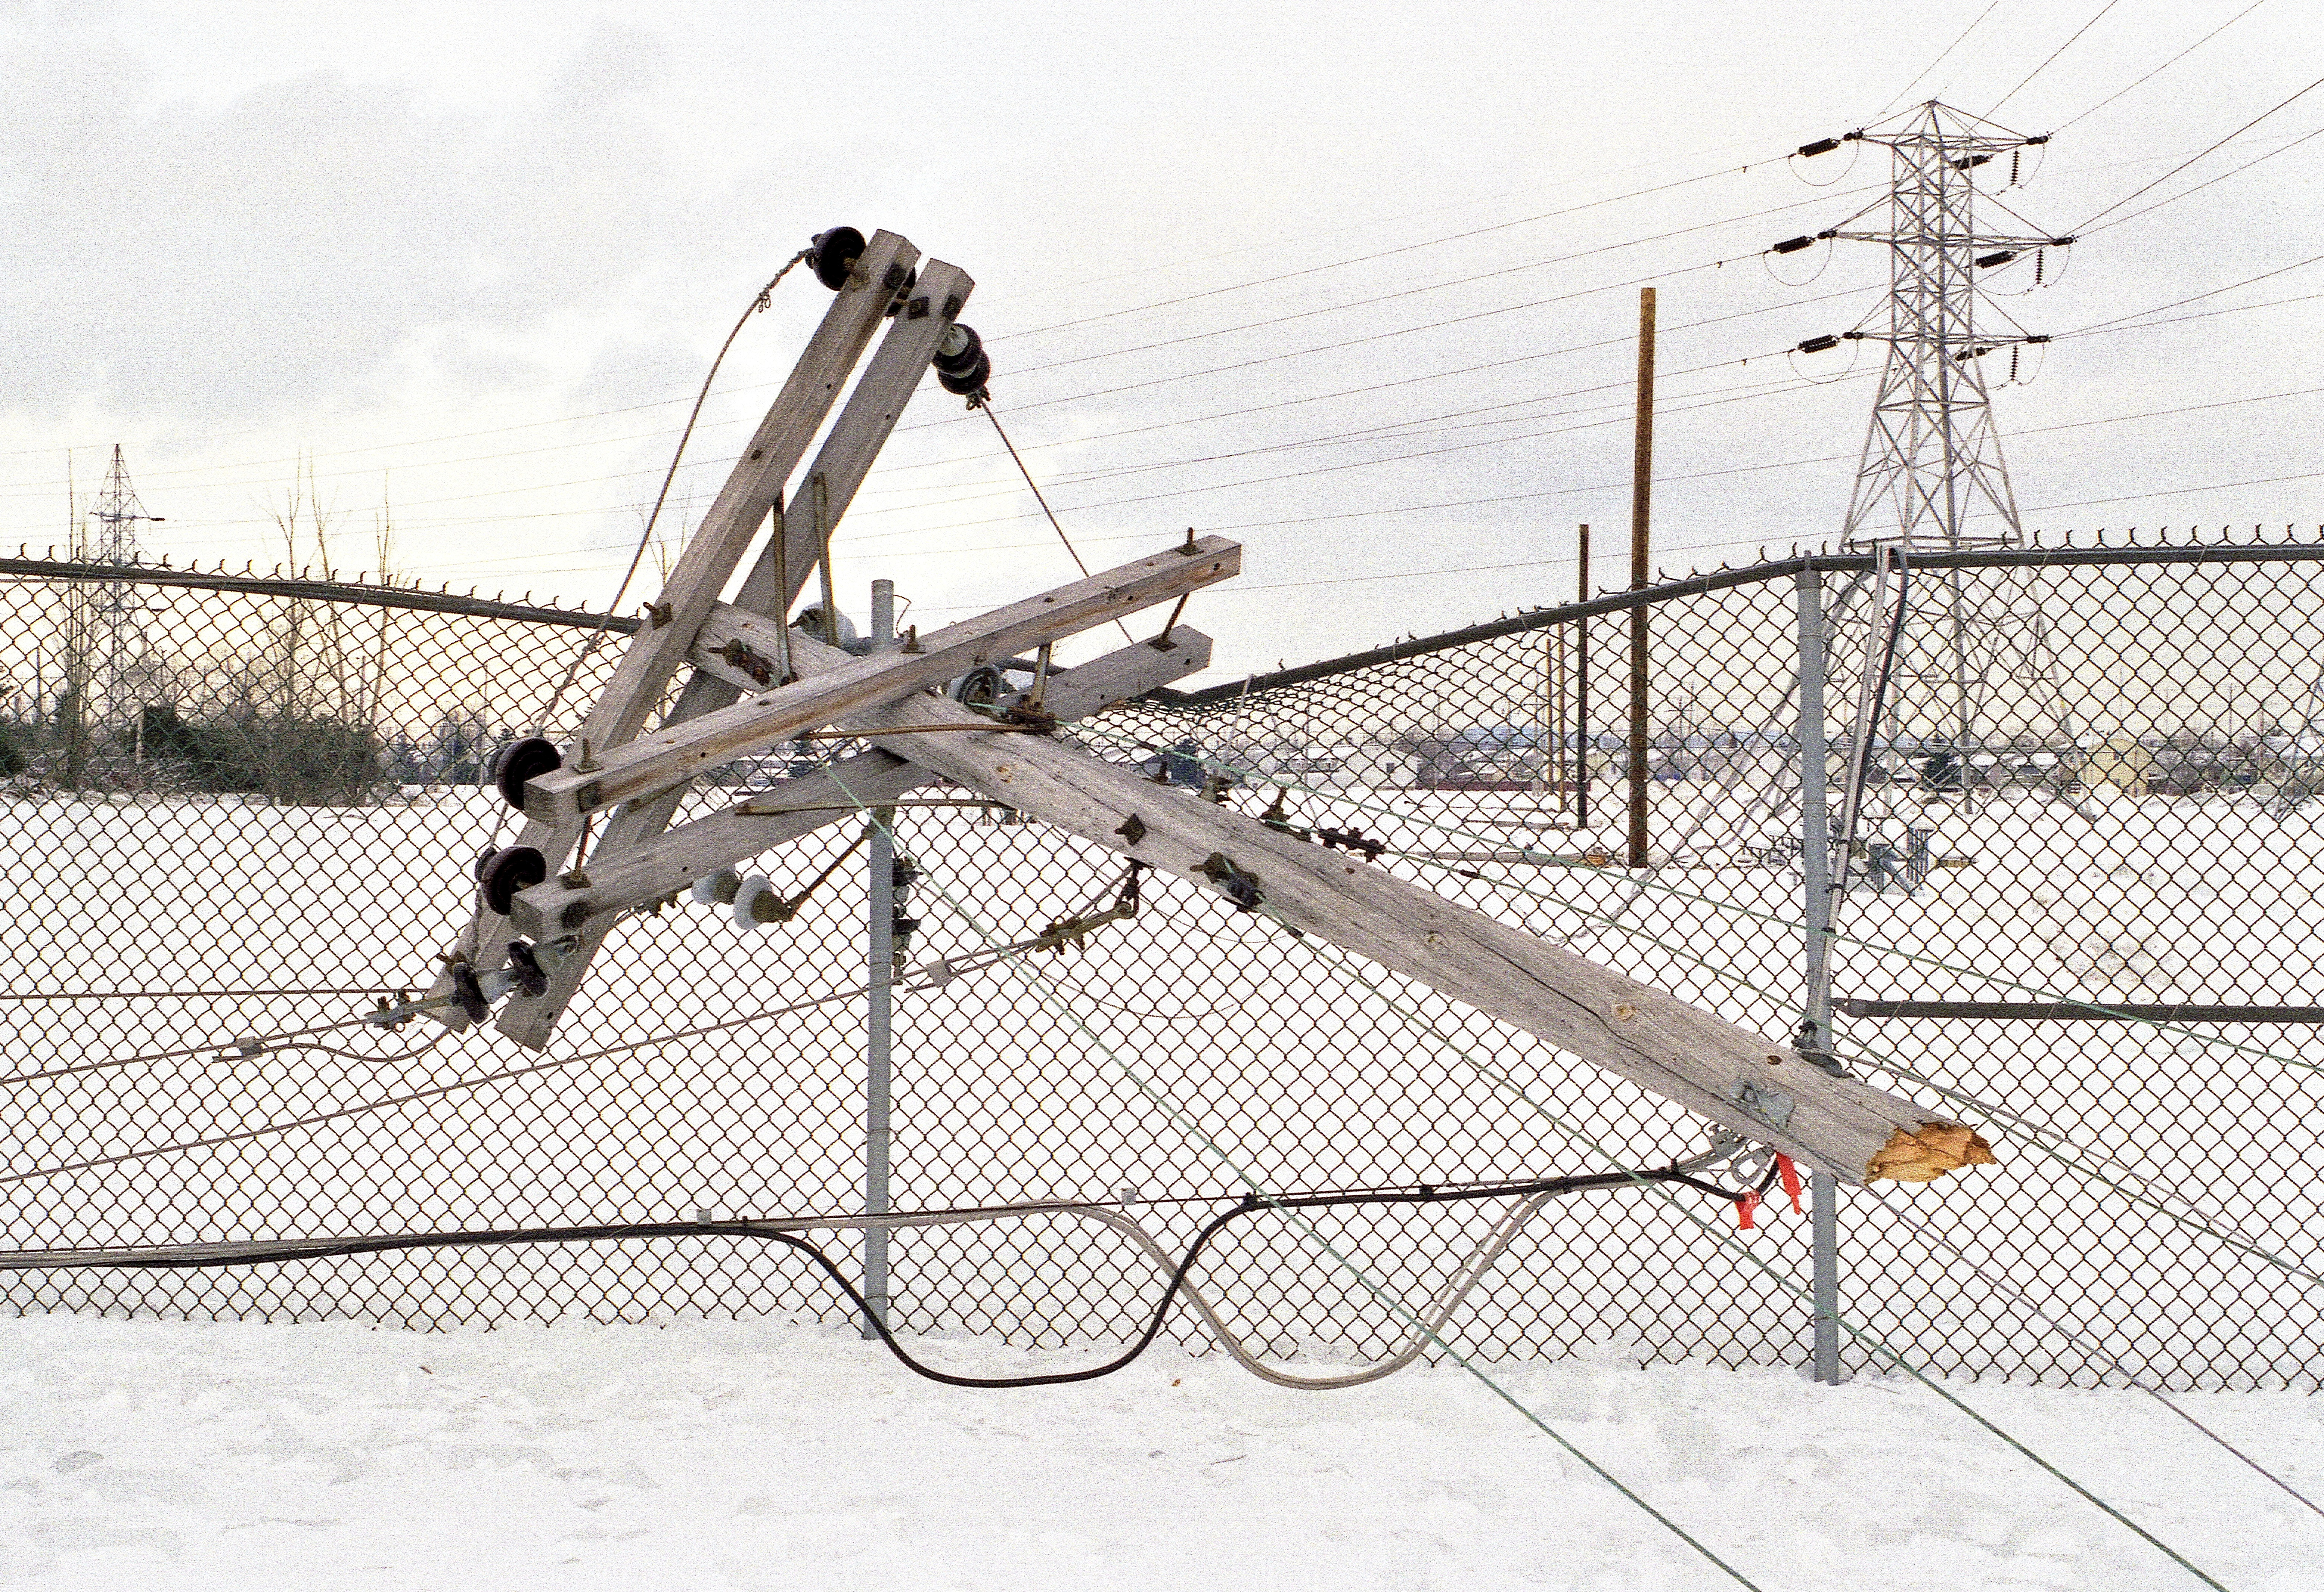 power lines downed by ice storm